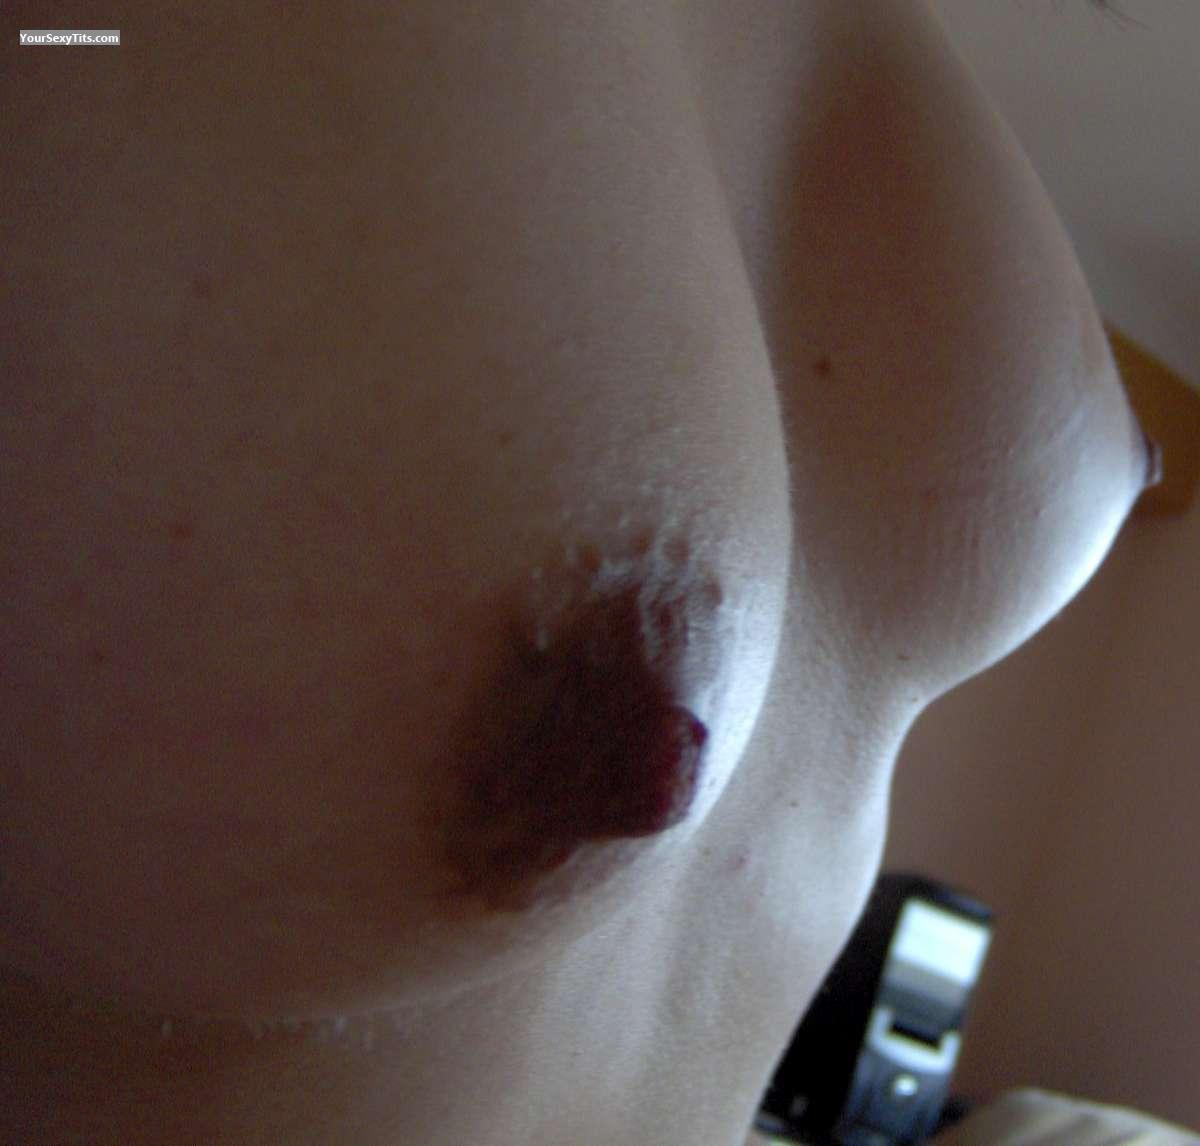 Tit Flash: My Medium Tits (Selfie) - VoyeurwebLover from Venezuela